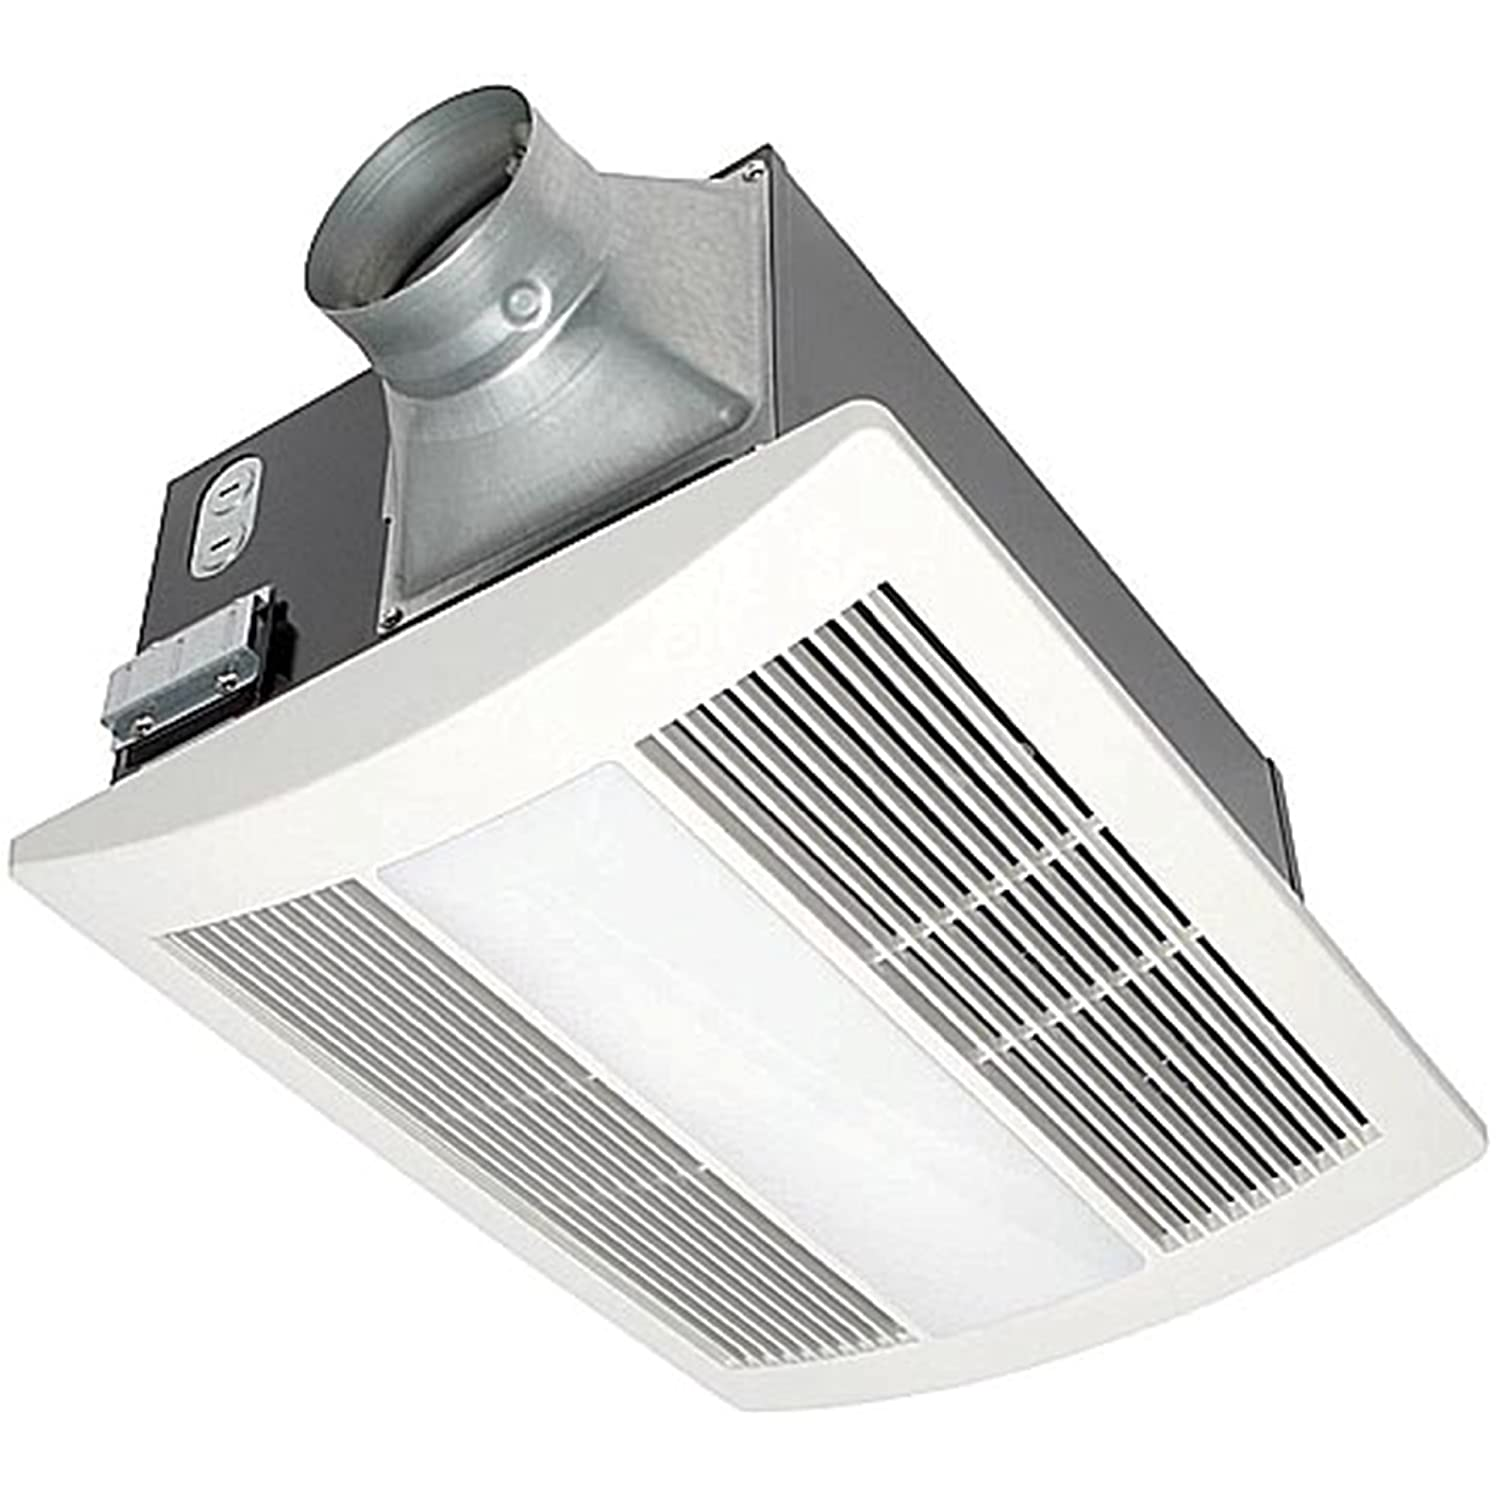 Panasonic FV-11VHL2 WhisperWarm 110 CFM Ceiling Mounted Fan/Heat/Light -Night-Light Combination White - Heaters - Amazon.com  sc 1 st  Amazon.com : quiet bathroom light pull switch - azcodes.com